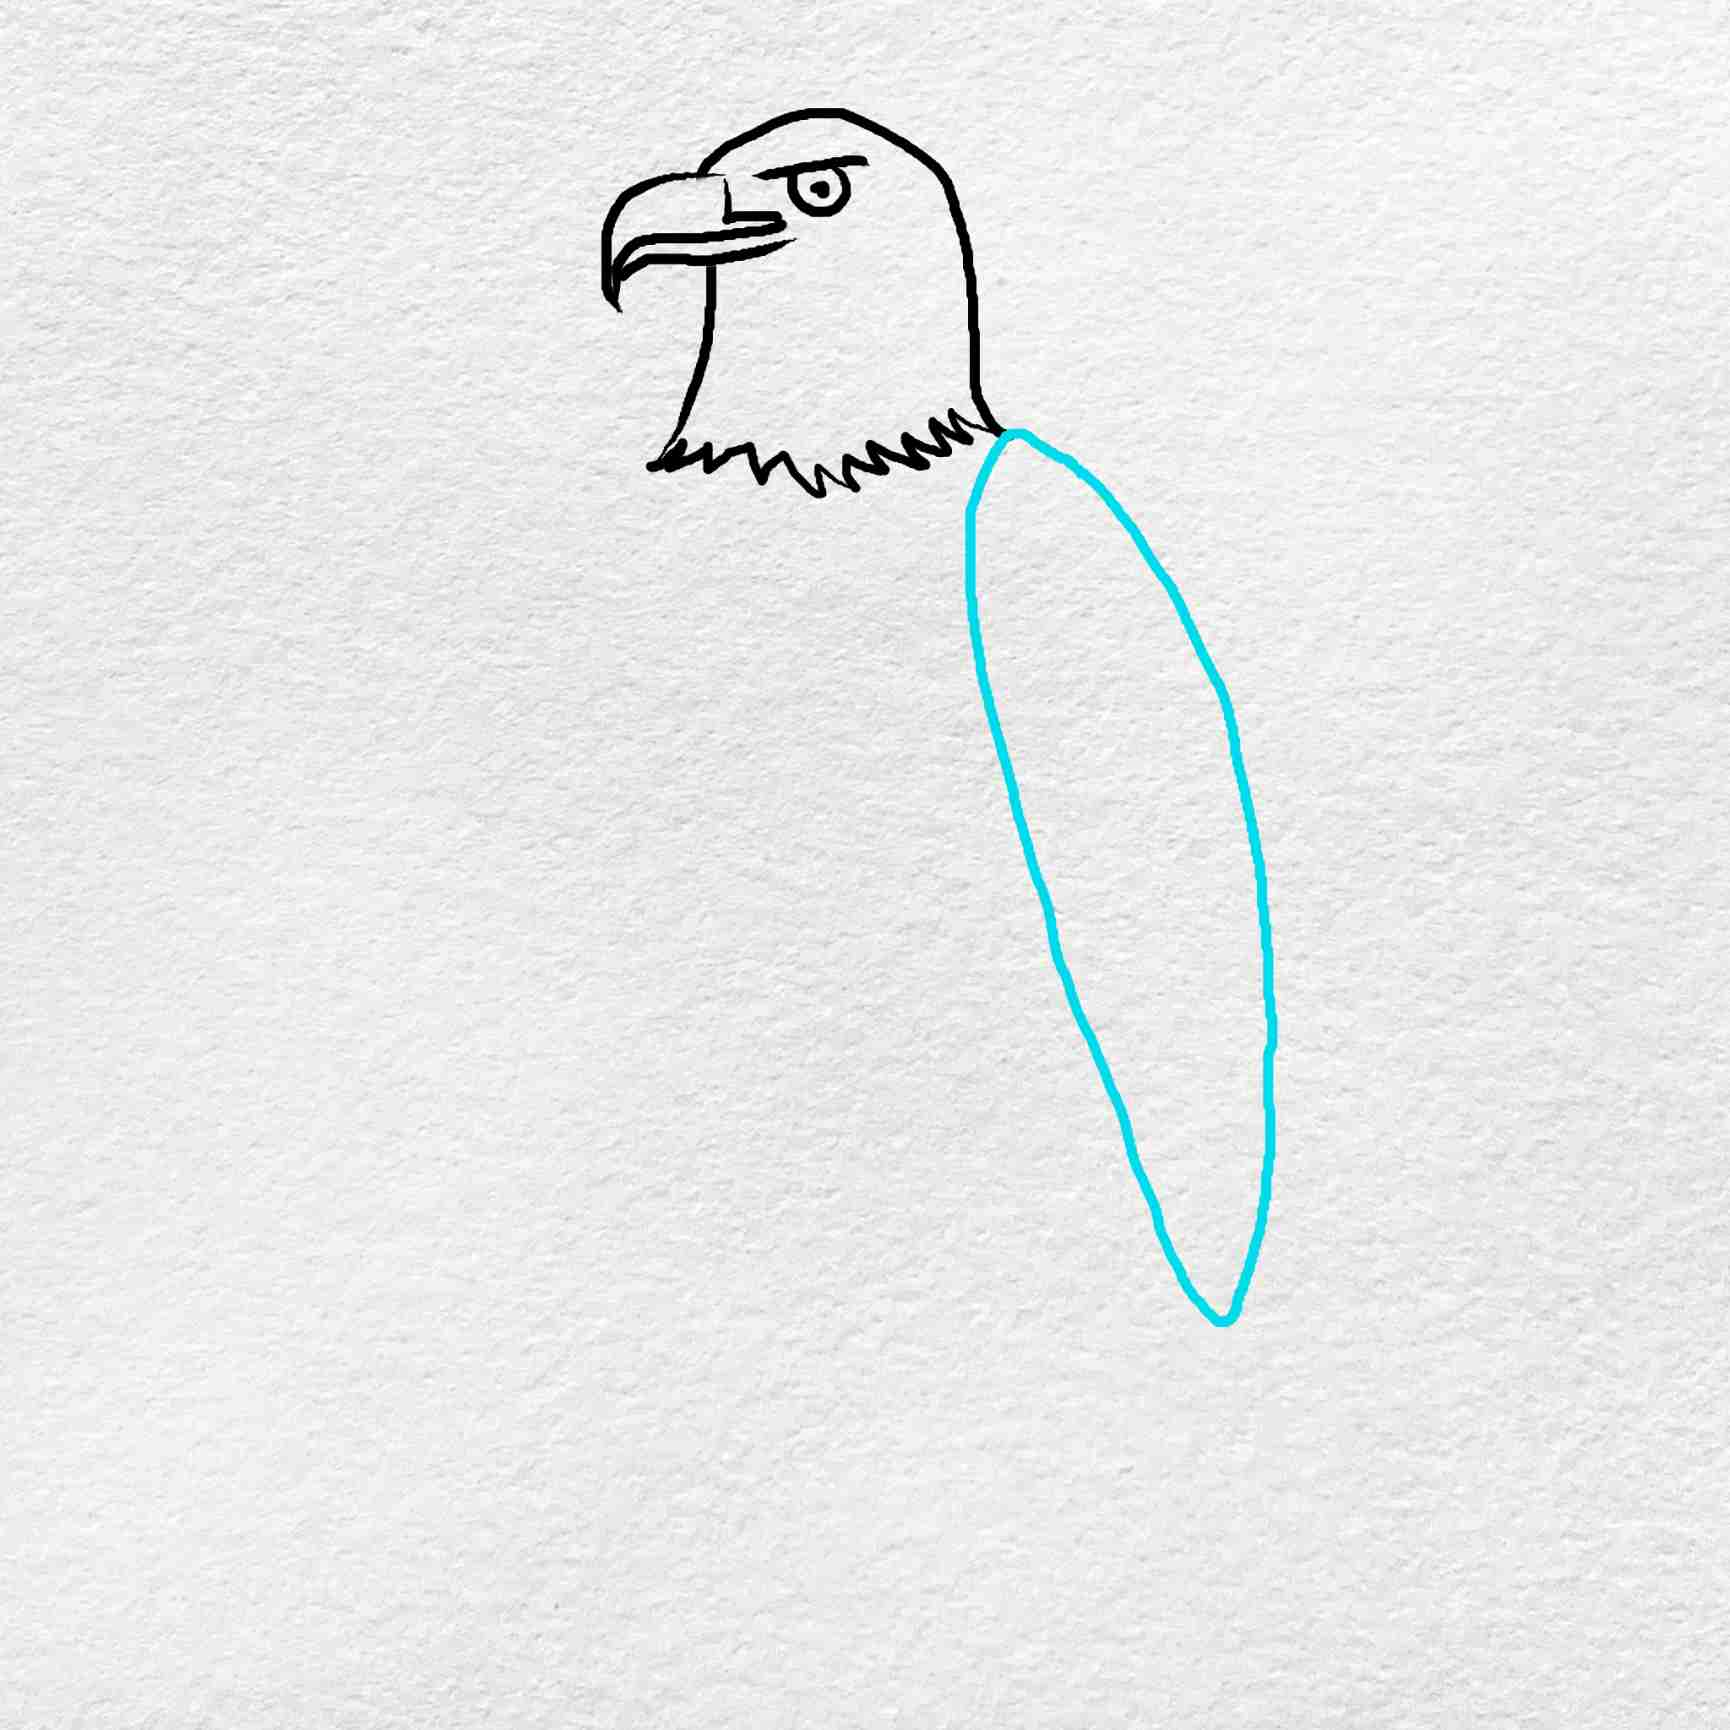 How To Draw An Eagle Easy: Step 3